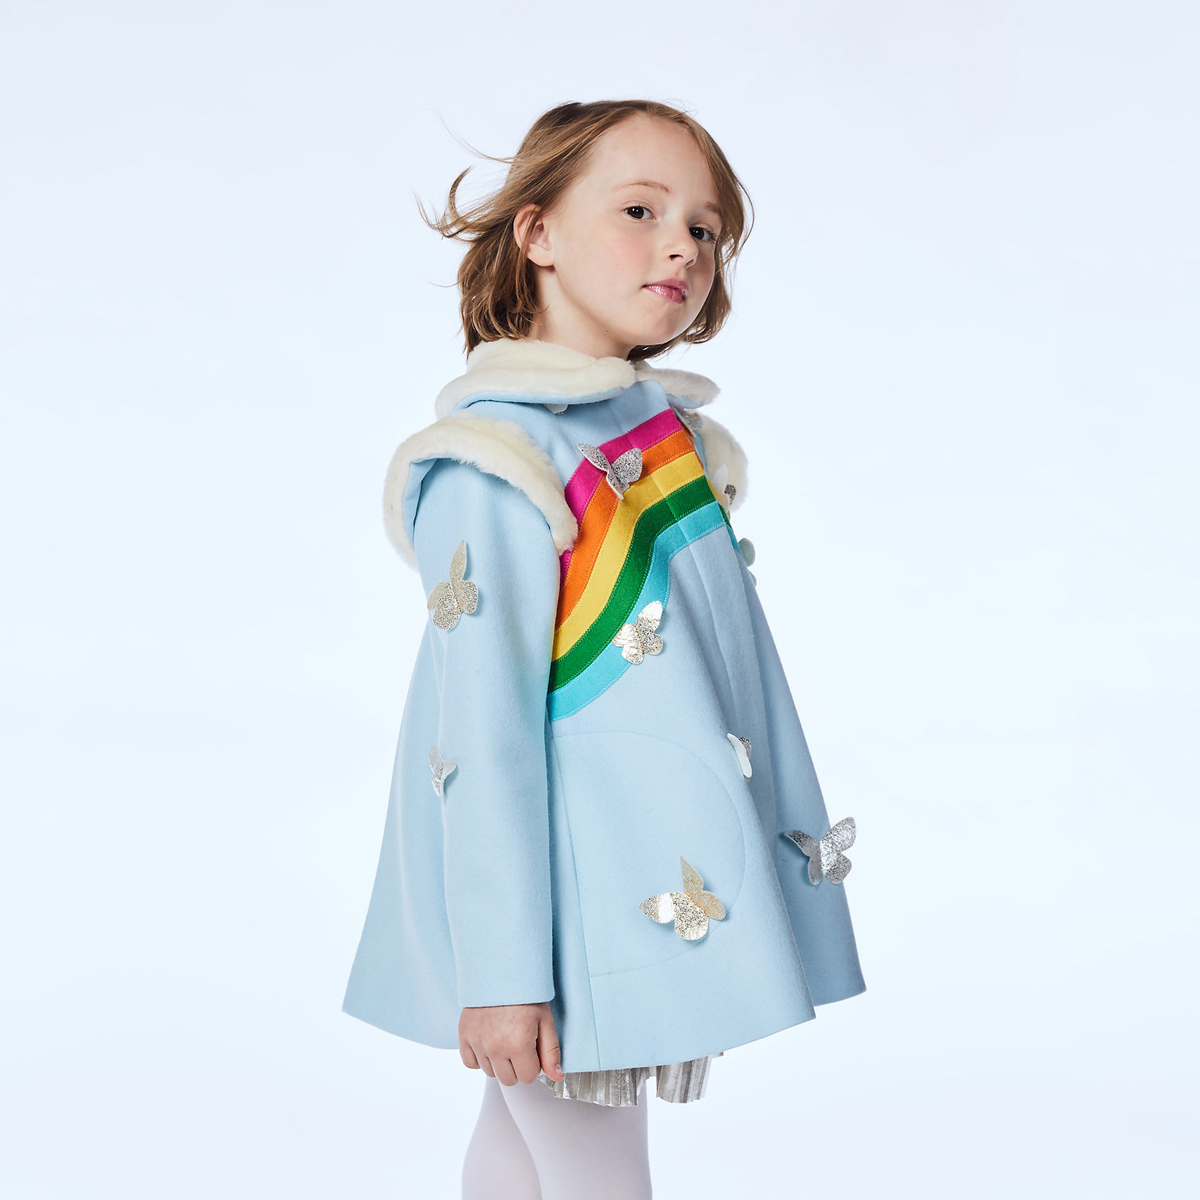 LittleGoodallRainbowCoat3